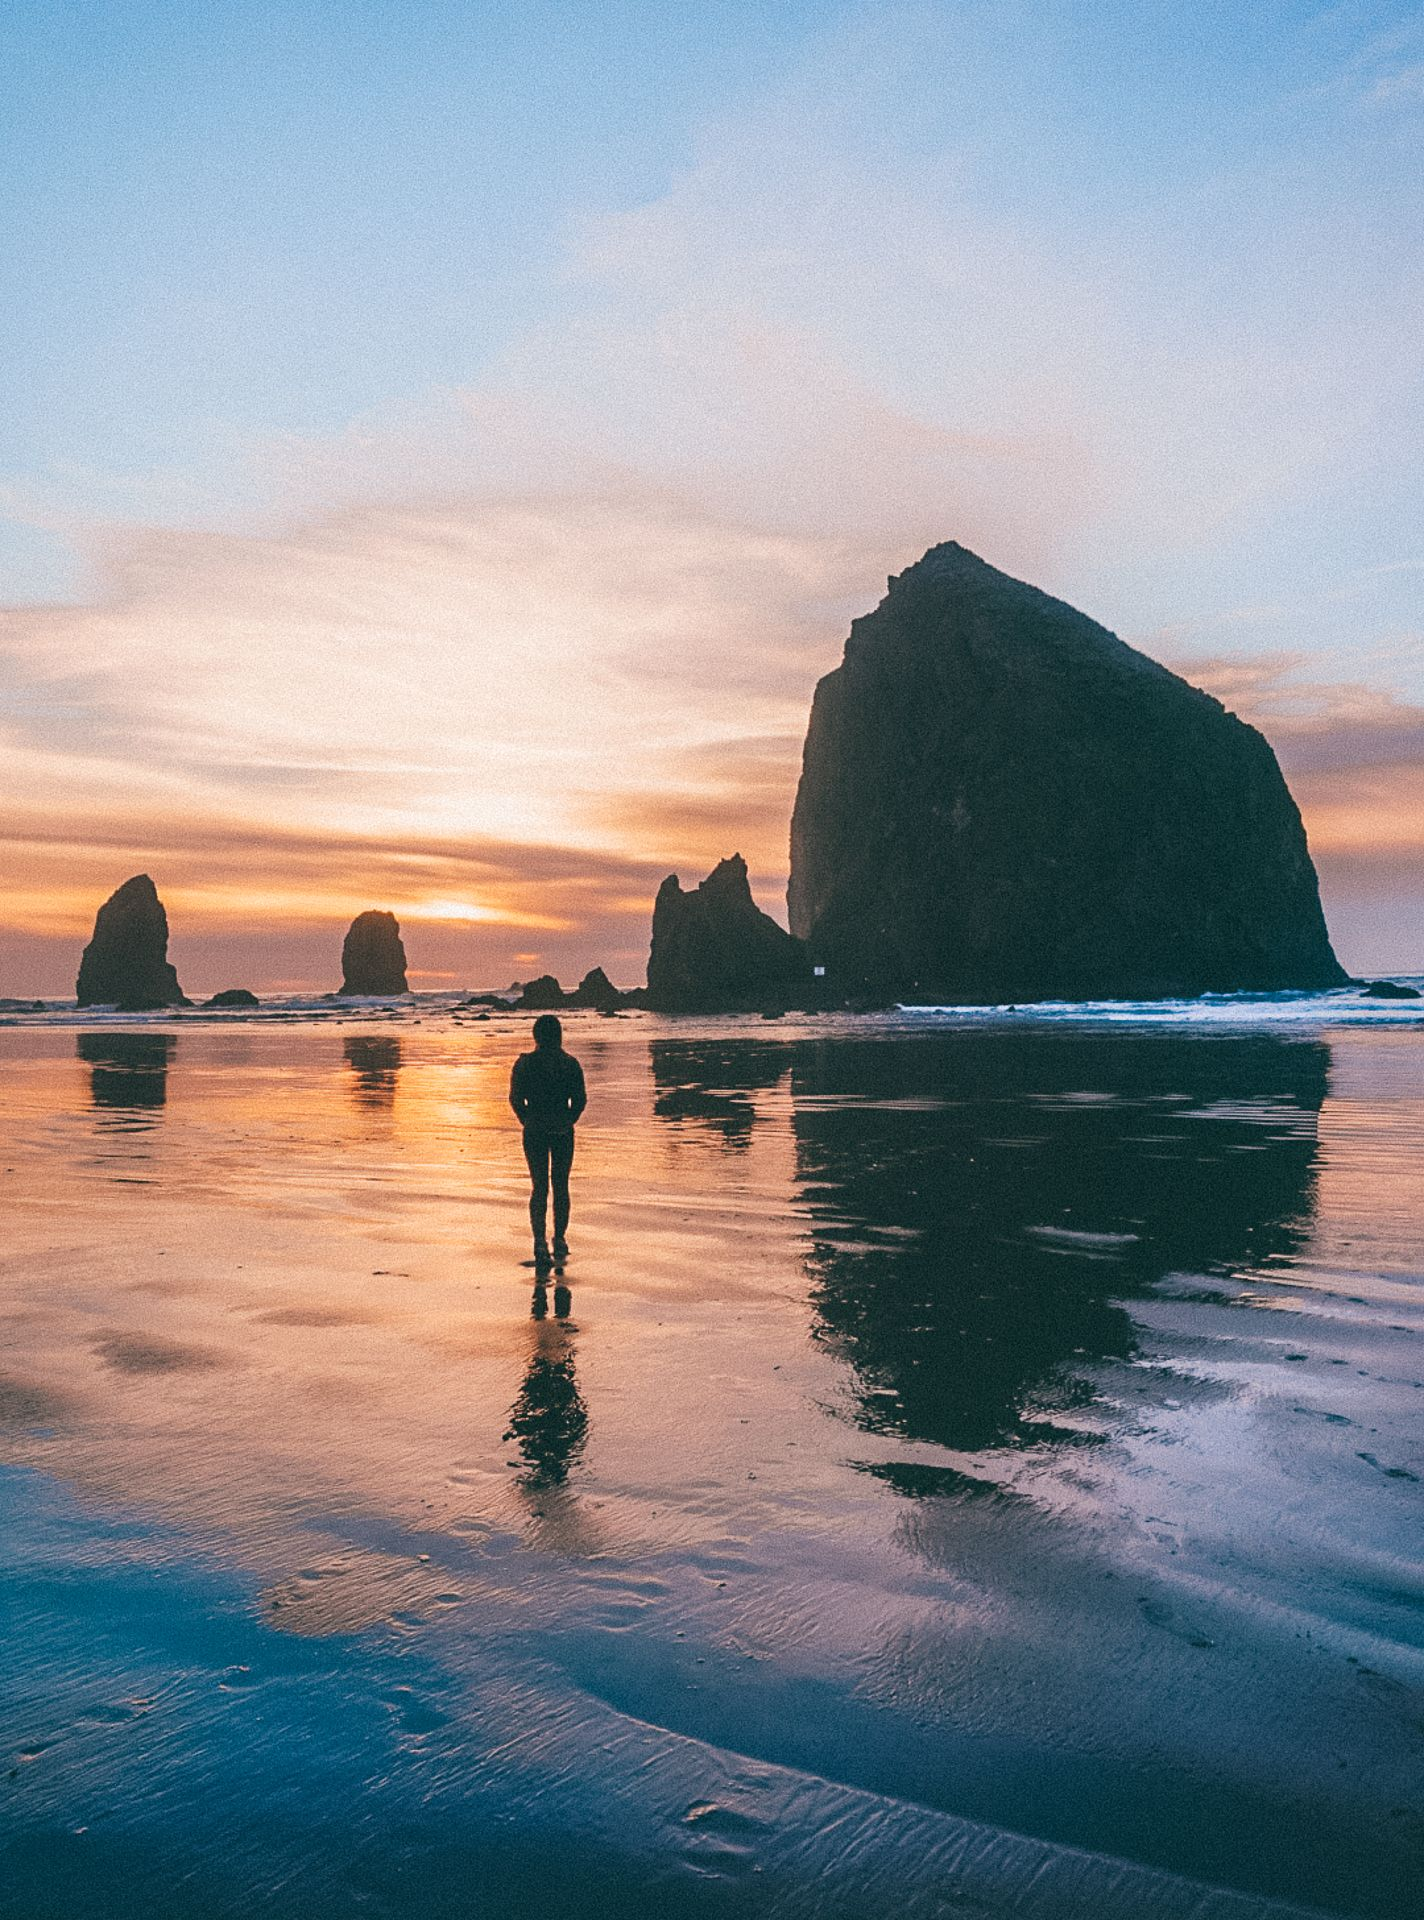 Cannon Beach in Oregon #oregoncoast